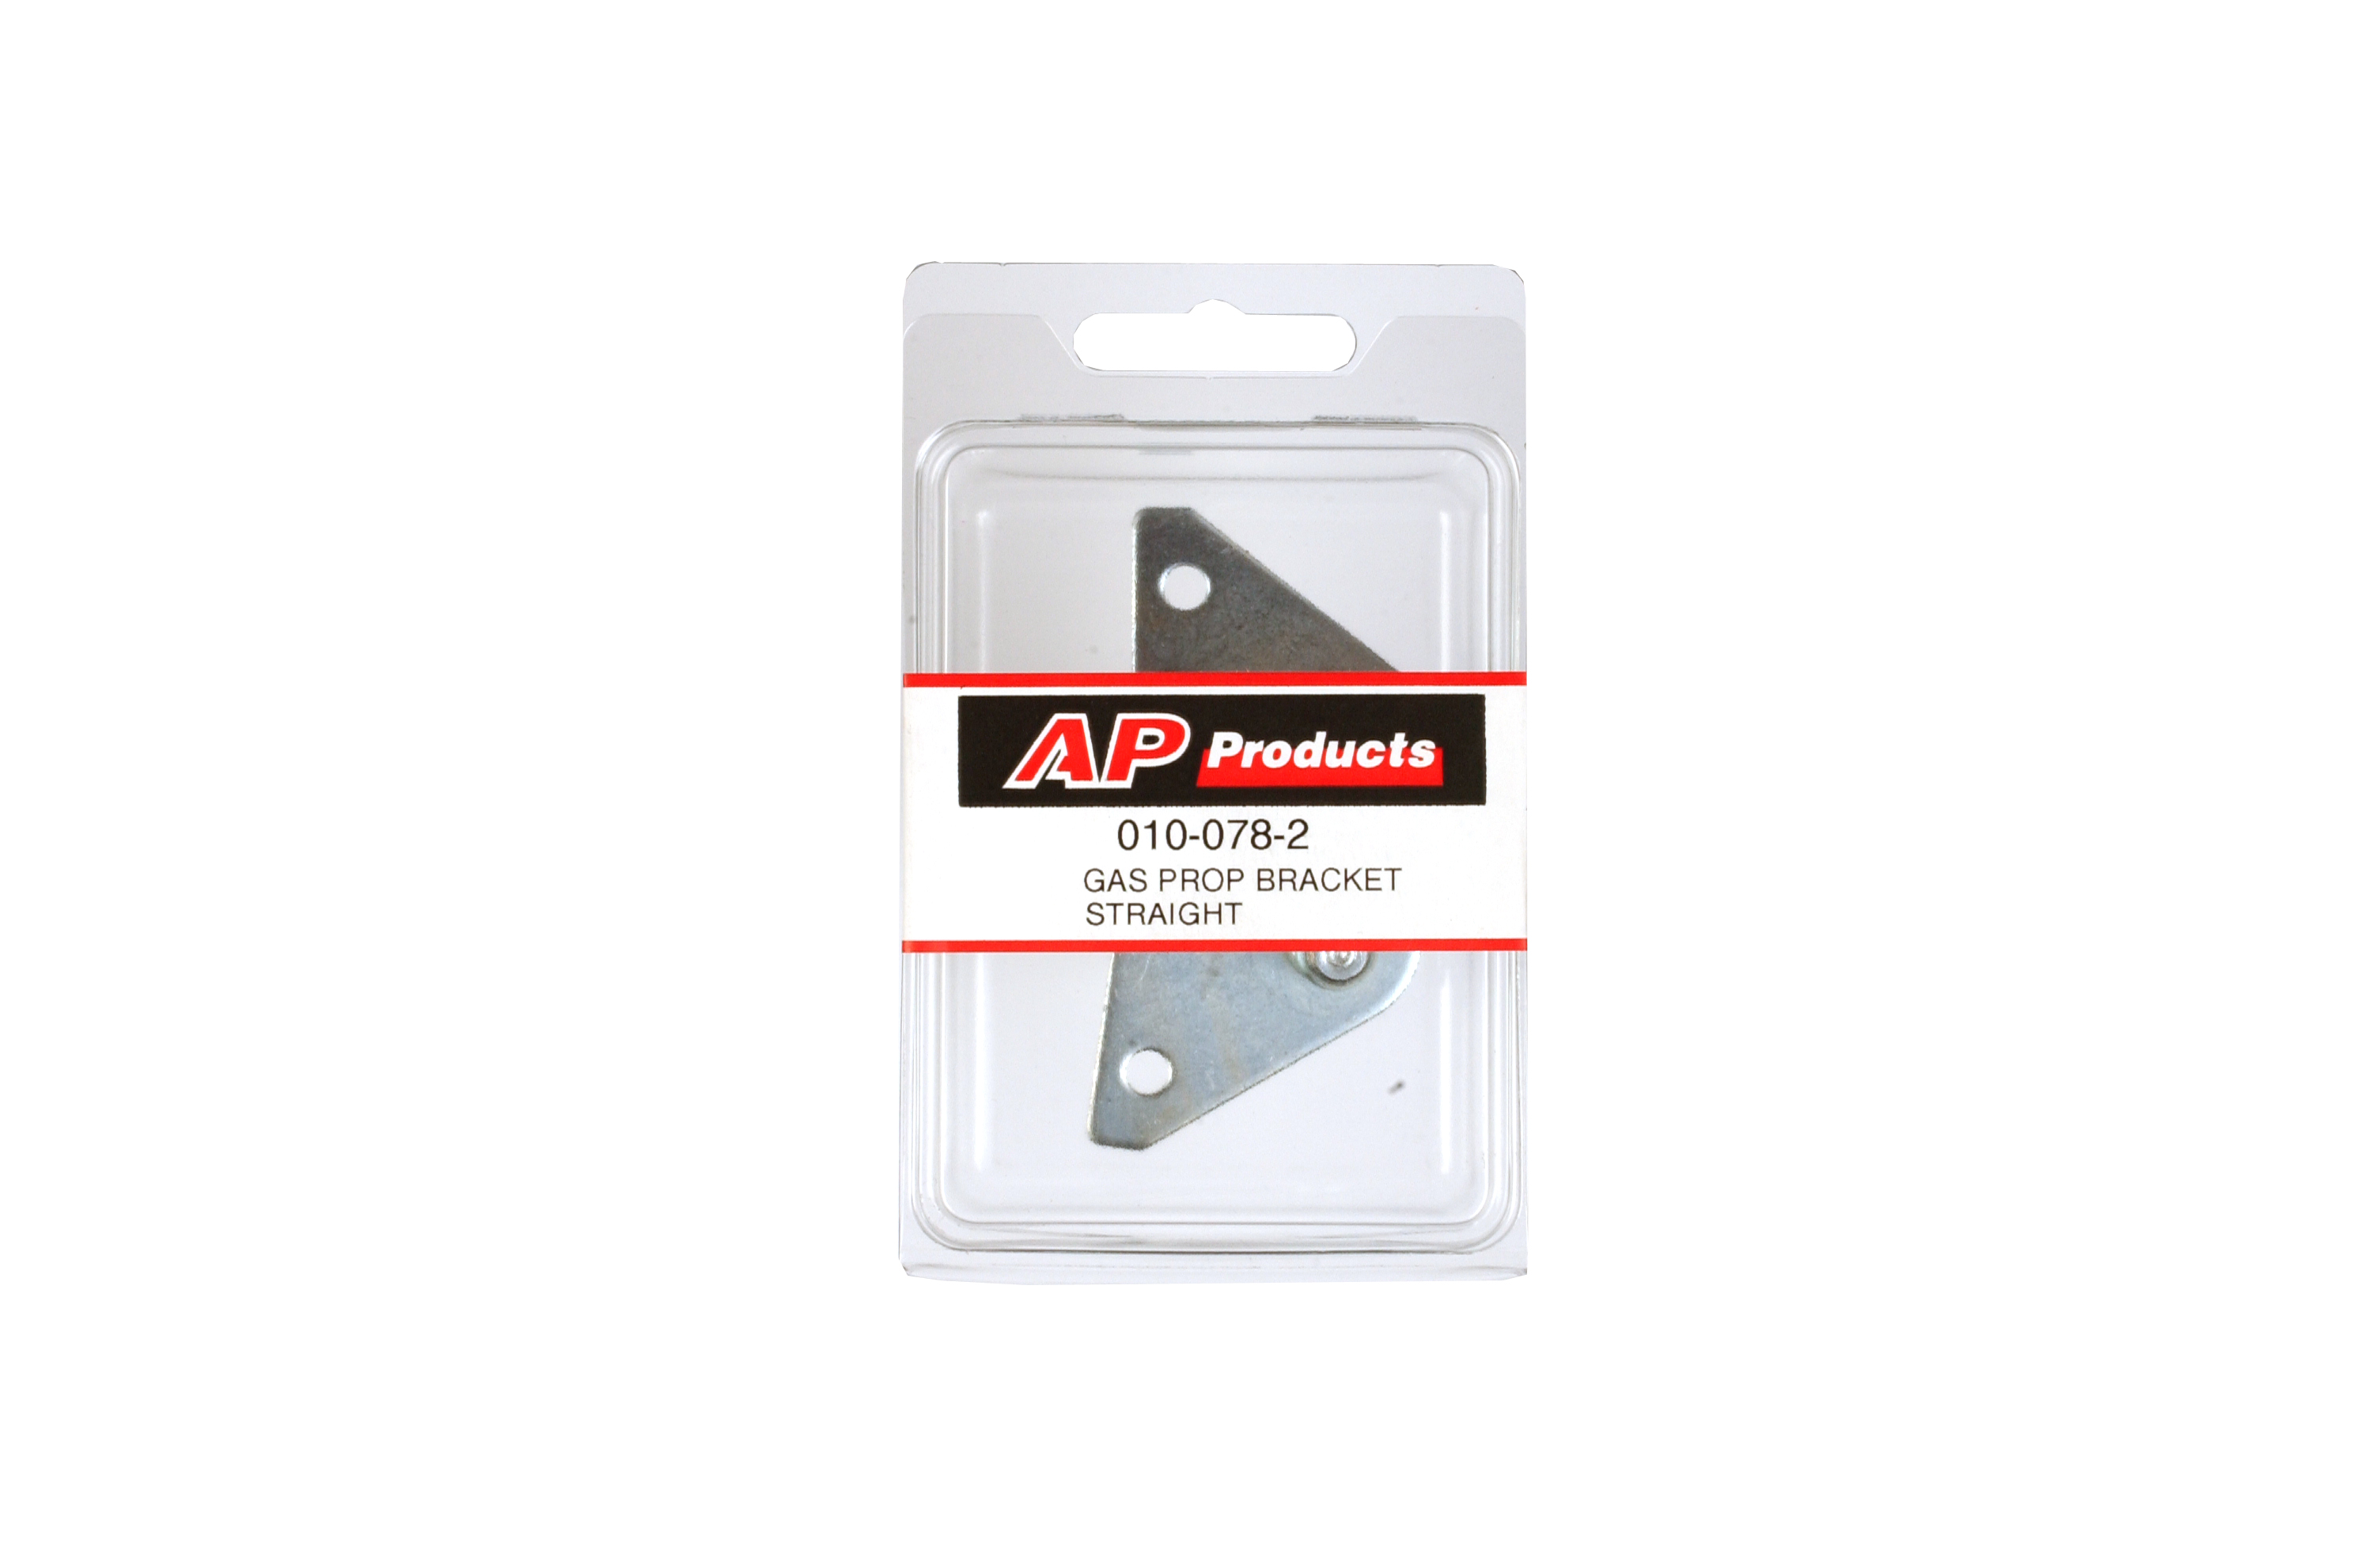 010-078-2 AP Products Multi Purpose Lift Support Bracket Used For